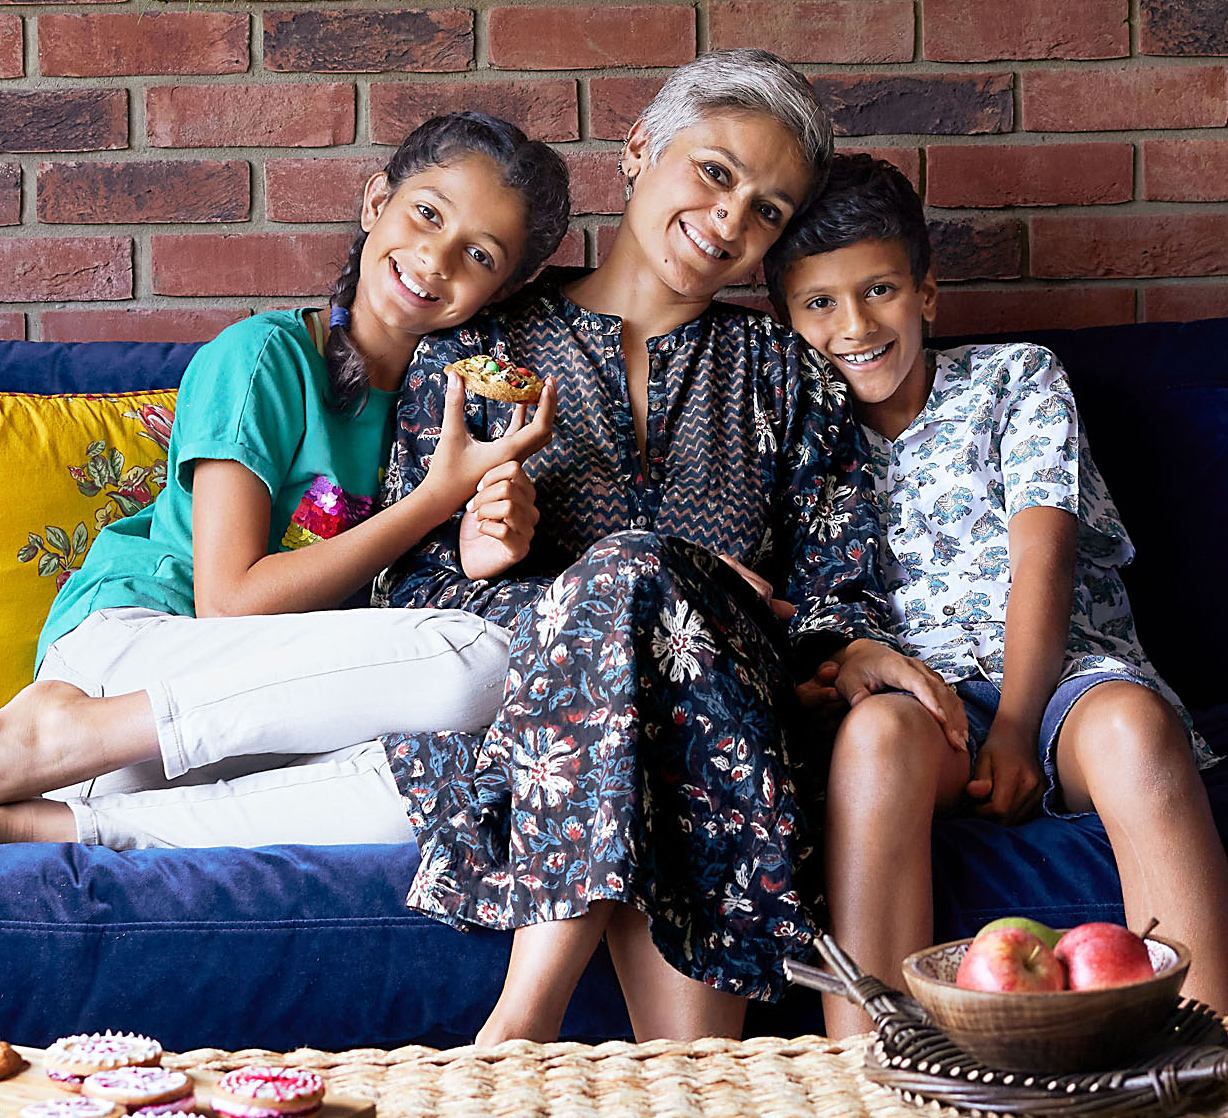 portrait of Chetna with kids on couch